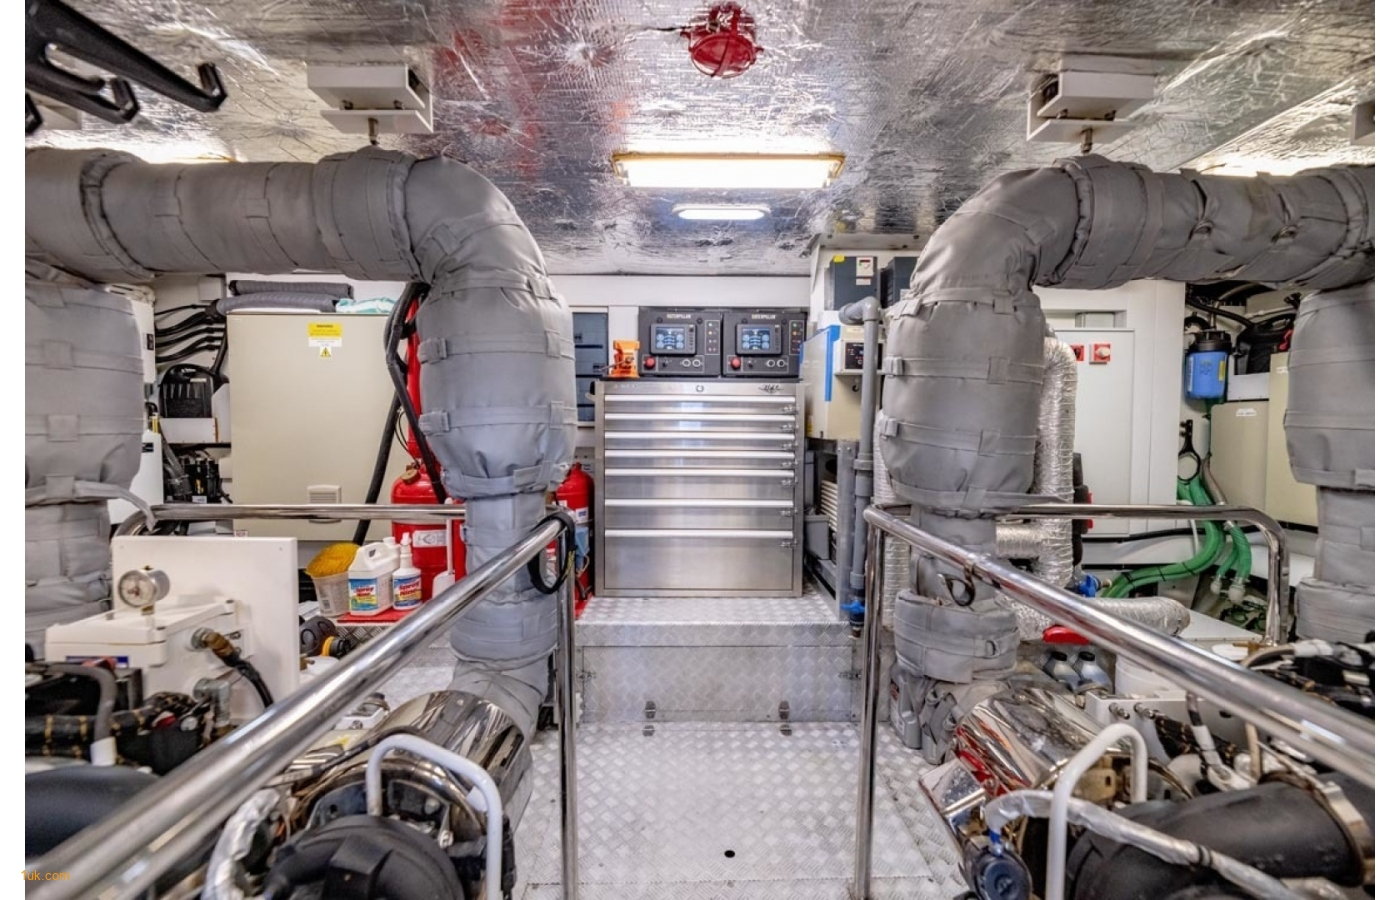 Another view of the engine room